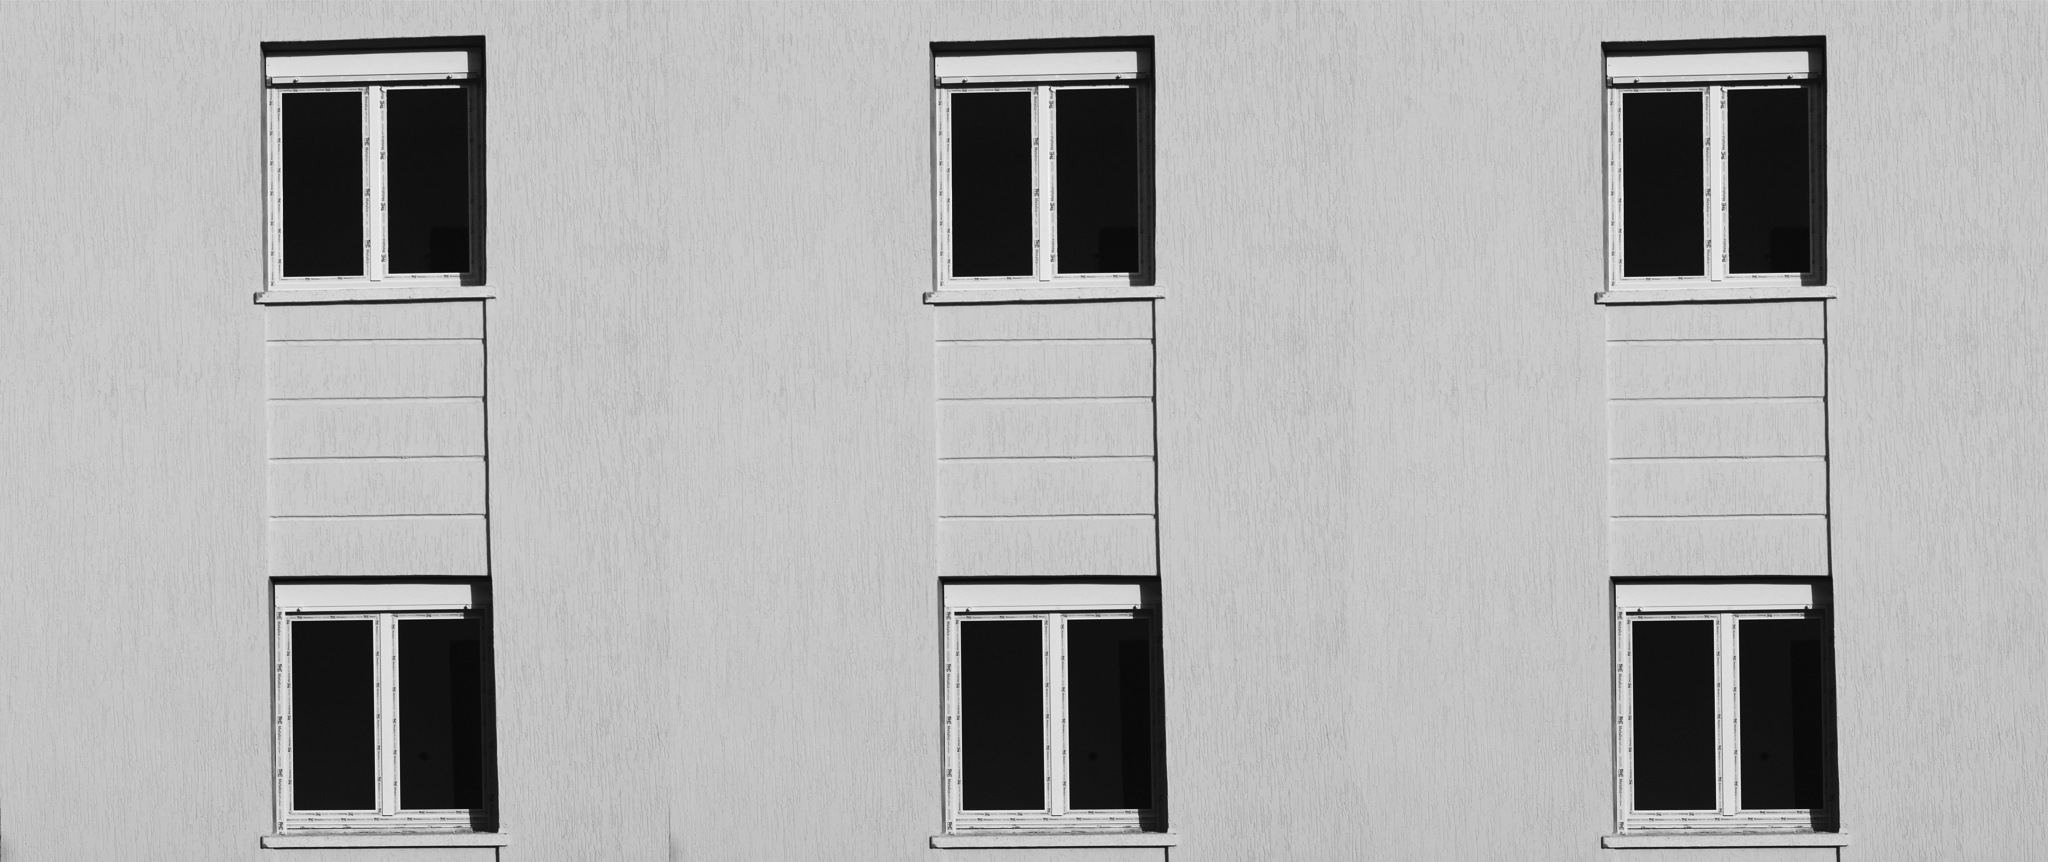 Parallel Engineering by BOUHAOUCHINE FETHI